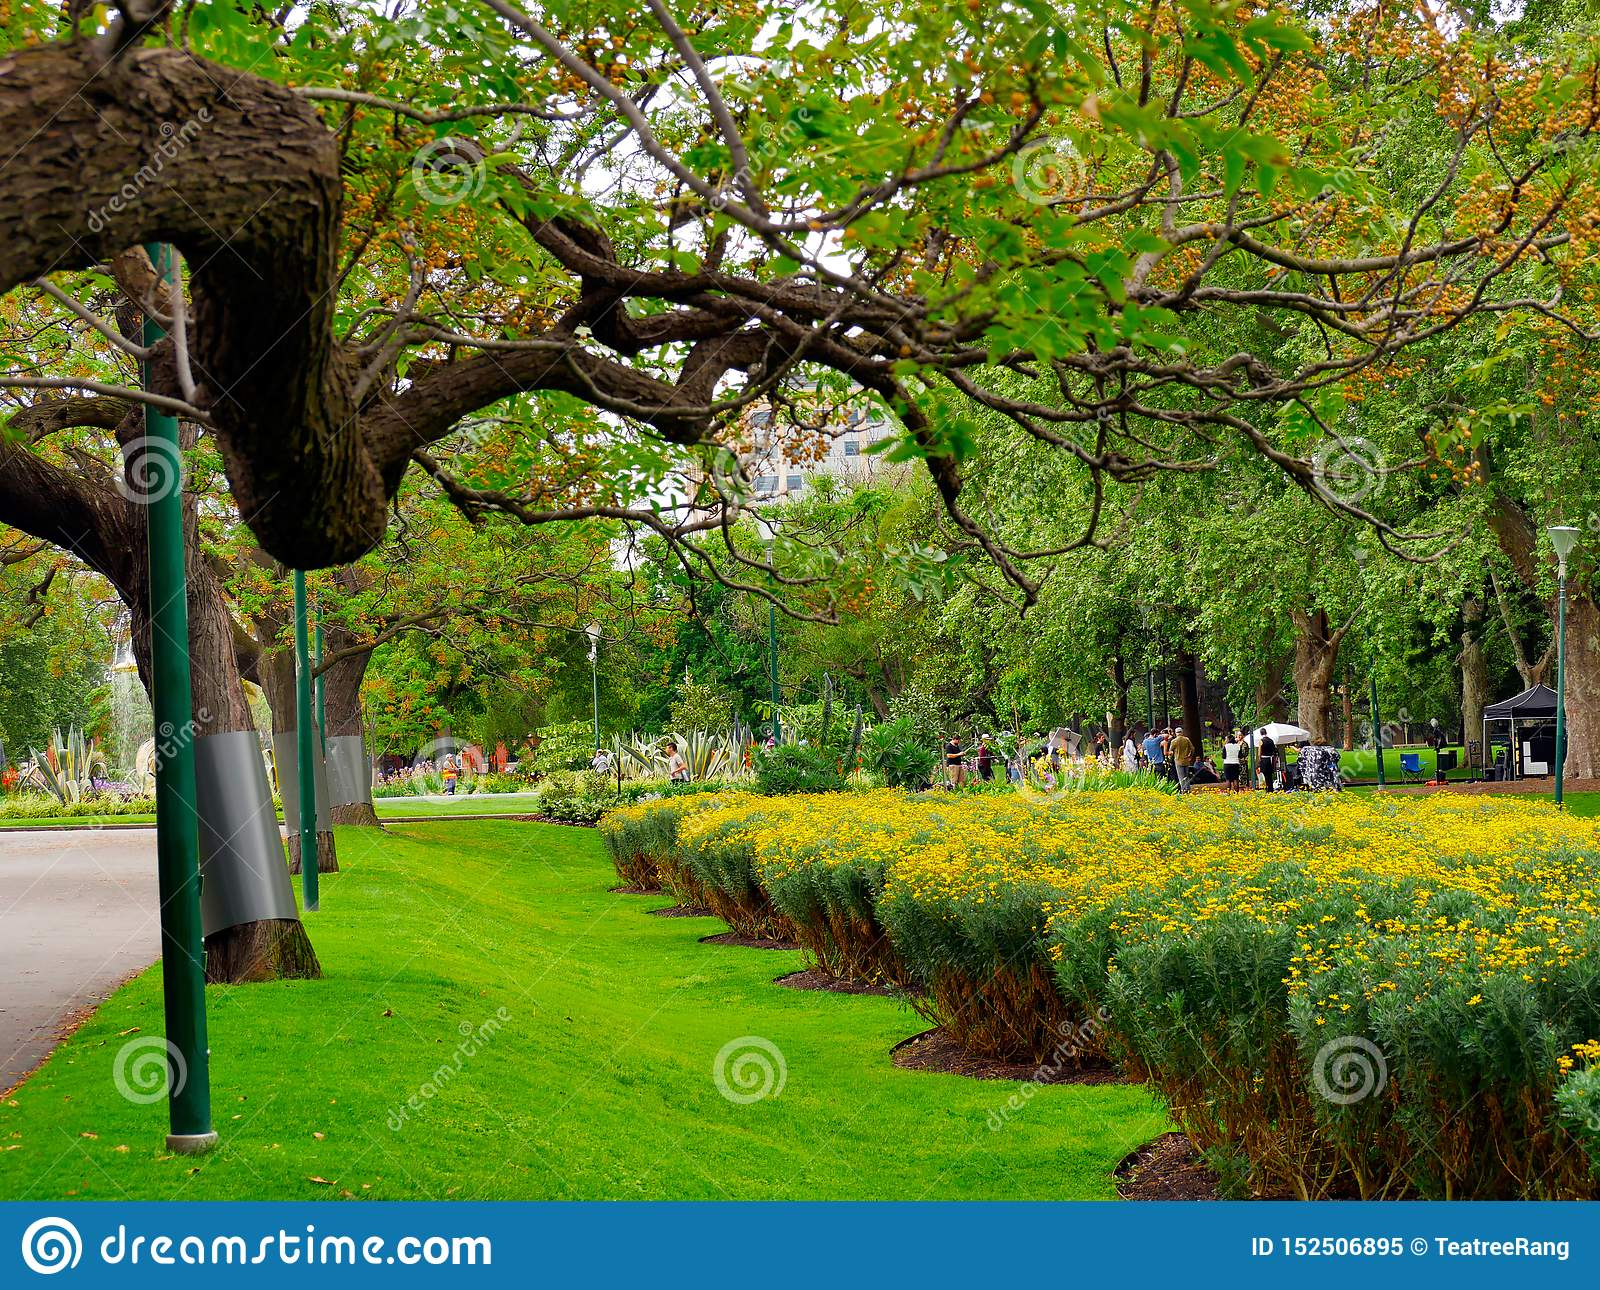 Adorable,peaceful scenery of Fitzroy Gardens in Melbourne